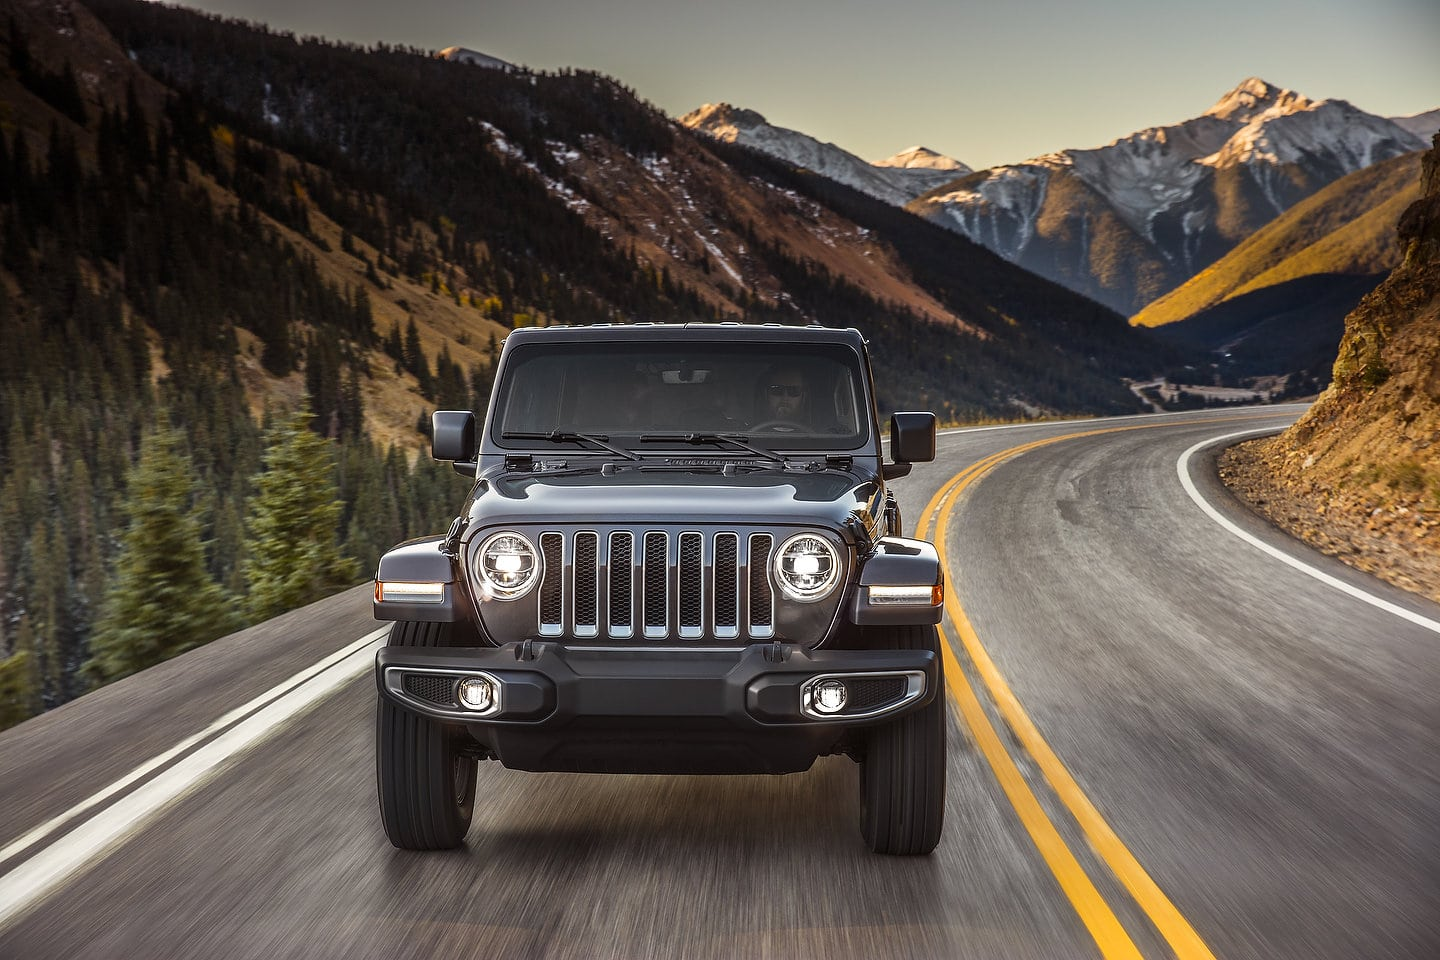 2020 Jeep Wrangler News Diesel Phev Price >> 2020 Jeep Wrangler Diesel Engine Will Cost 4 000 Motor